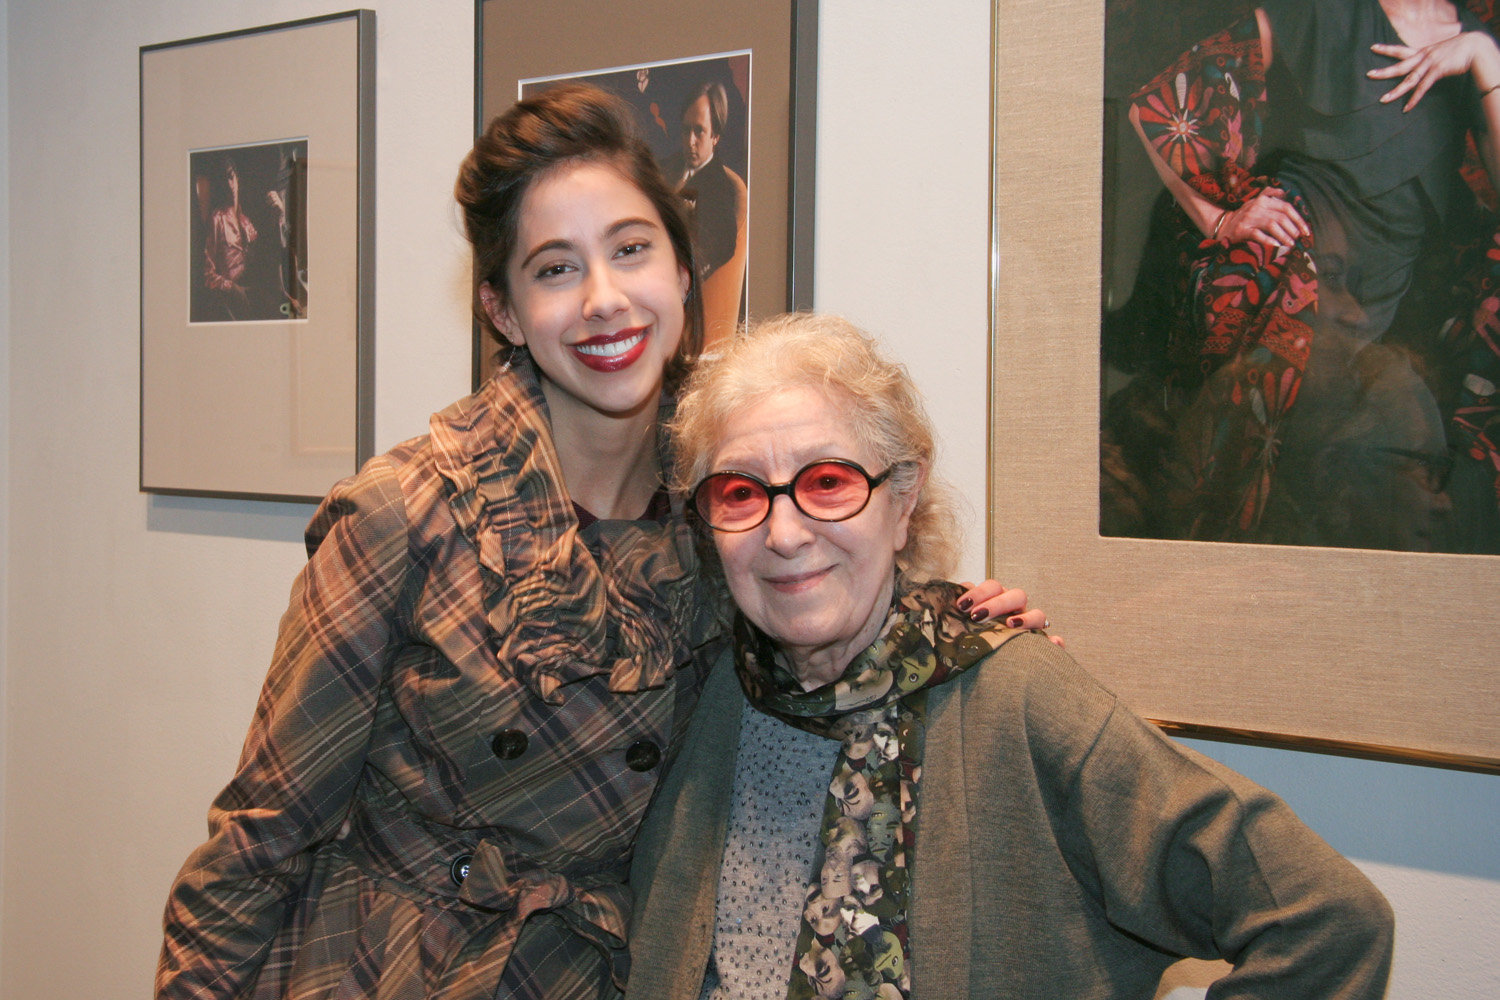 Celebrating Marie Consindas at the Photographic Resource Center